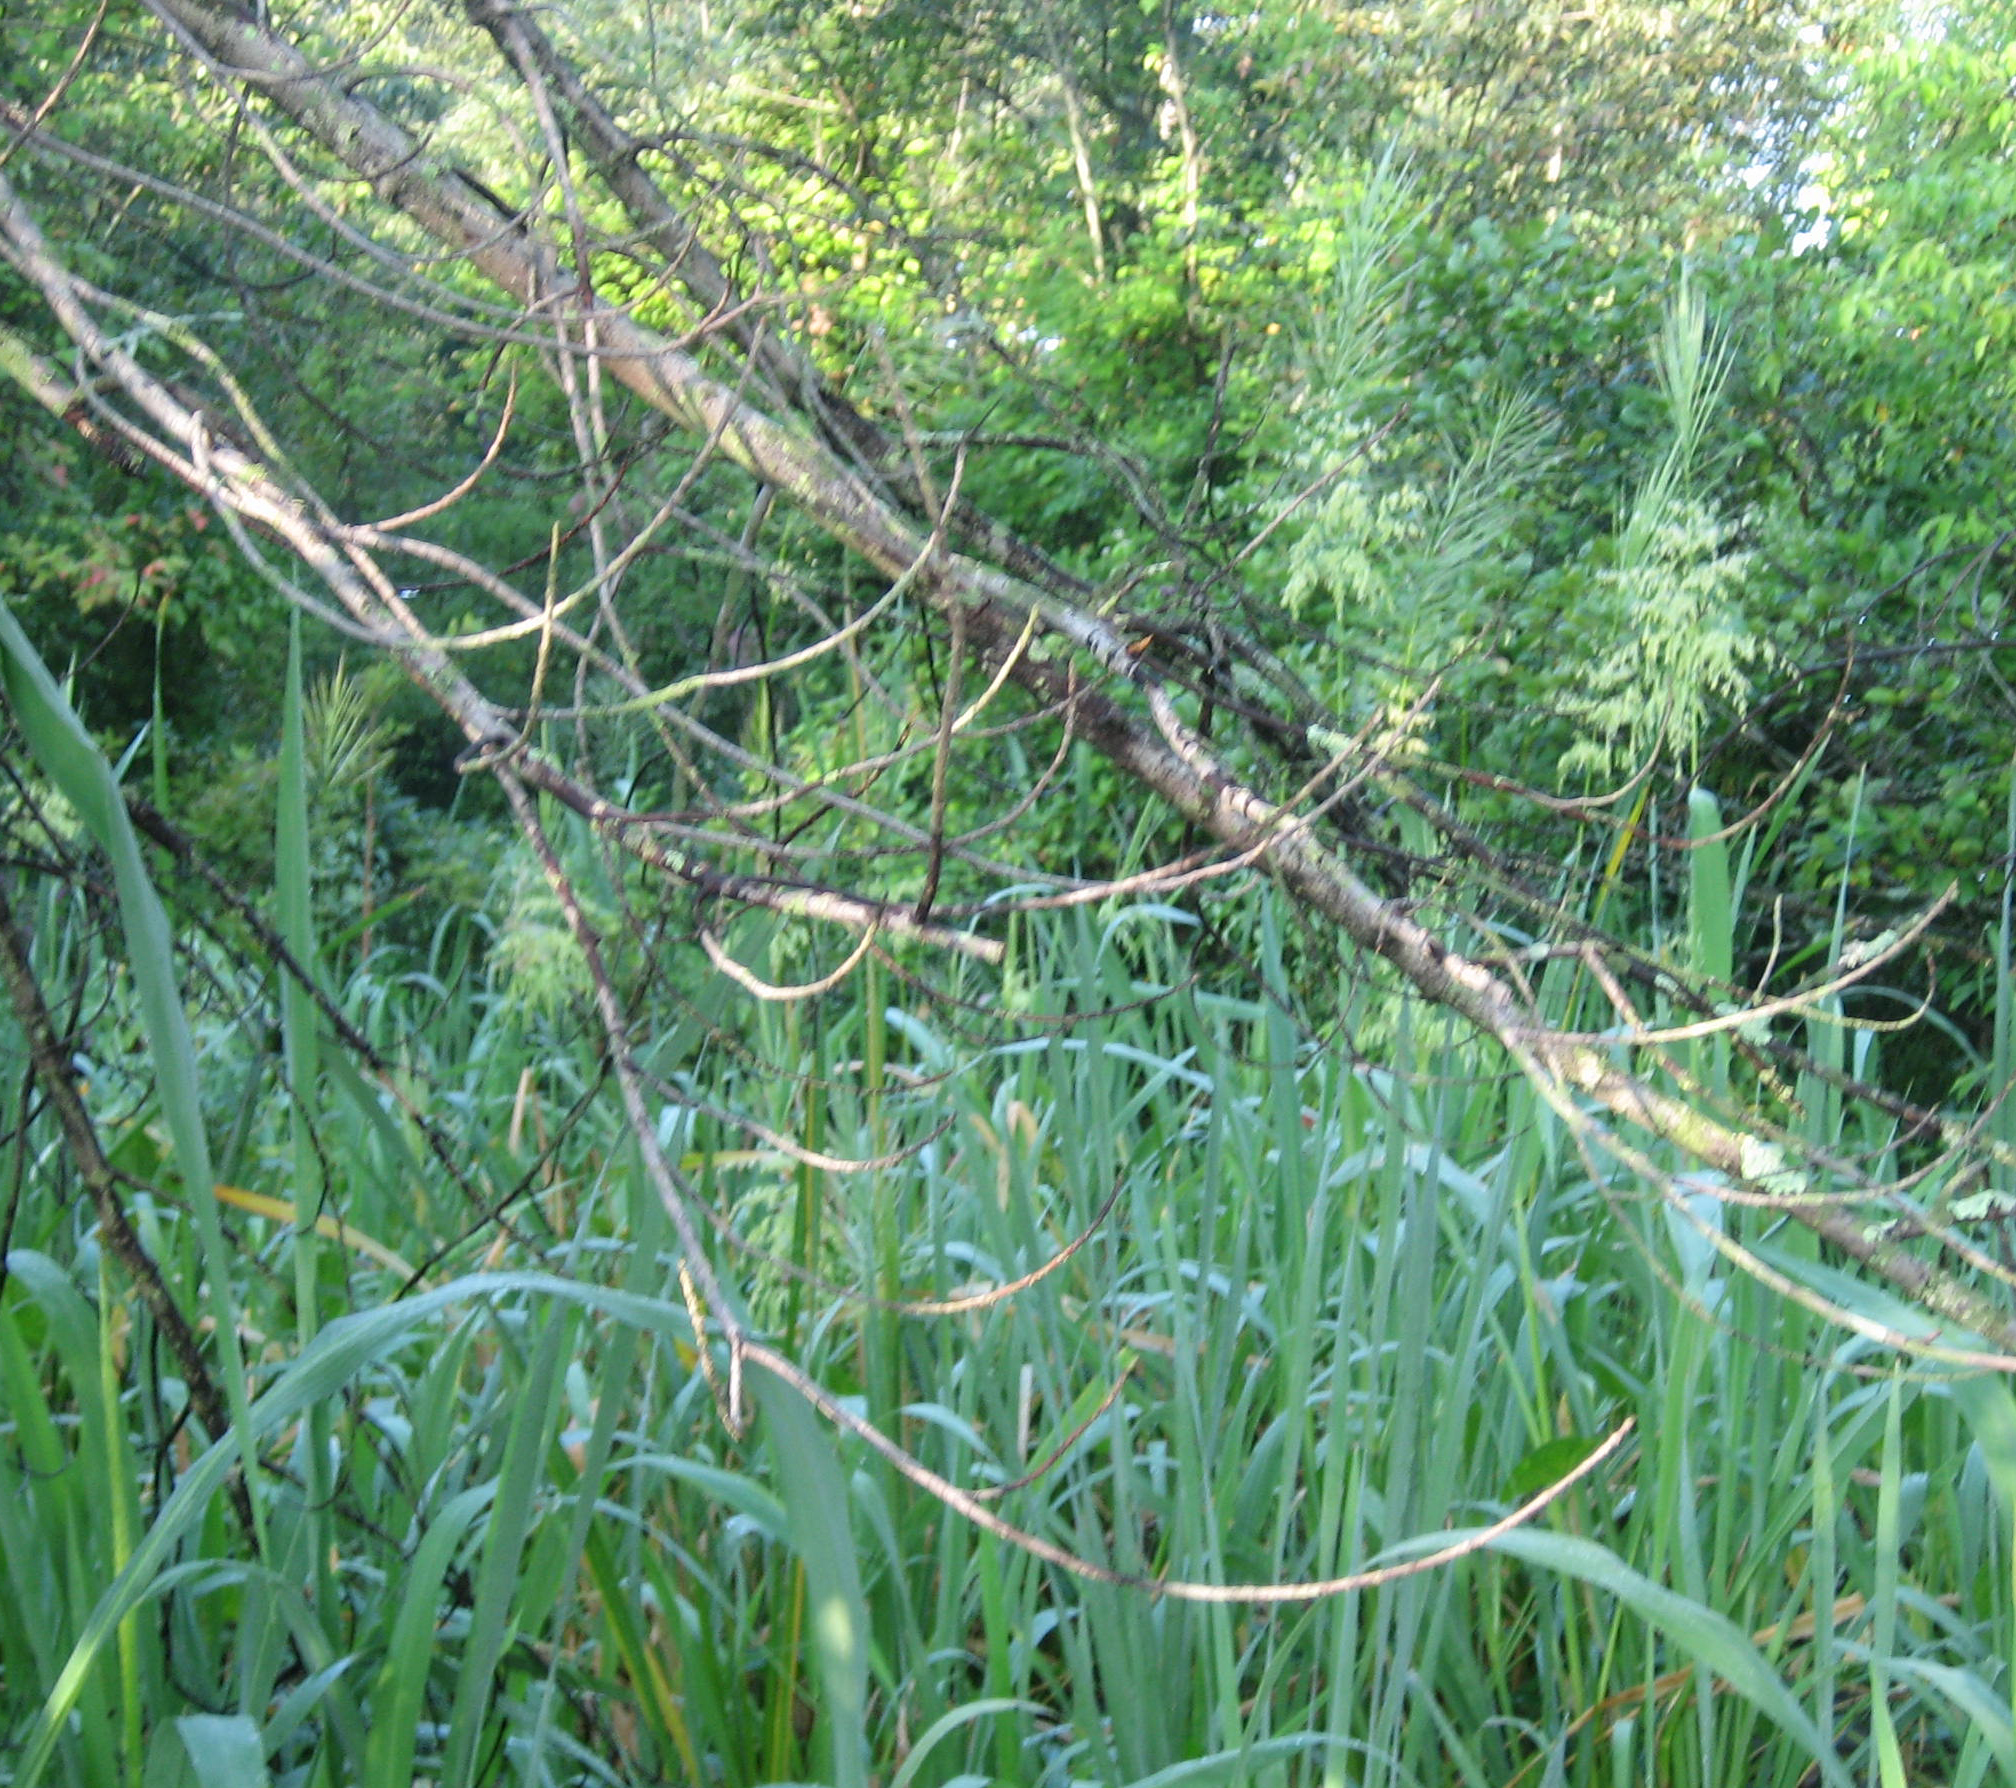 Swamps often have treeless clearings like this with cattail and wild rice.